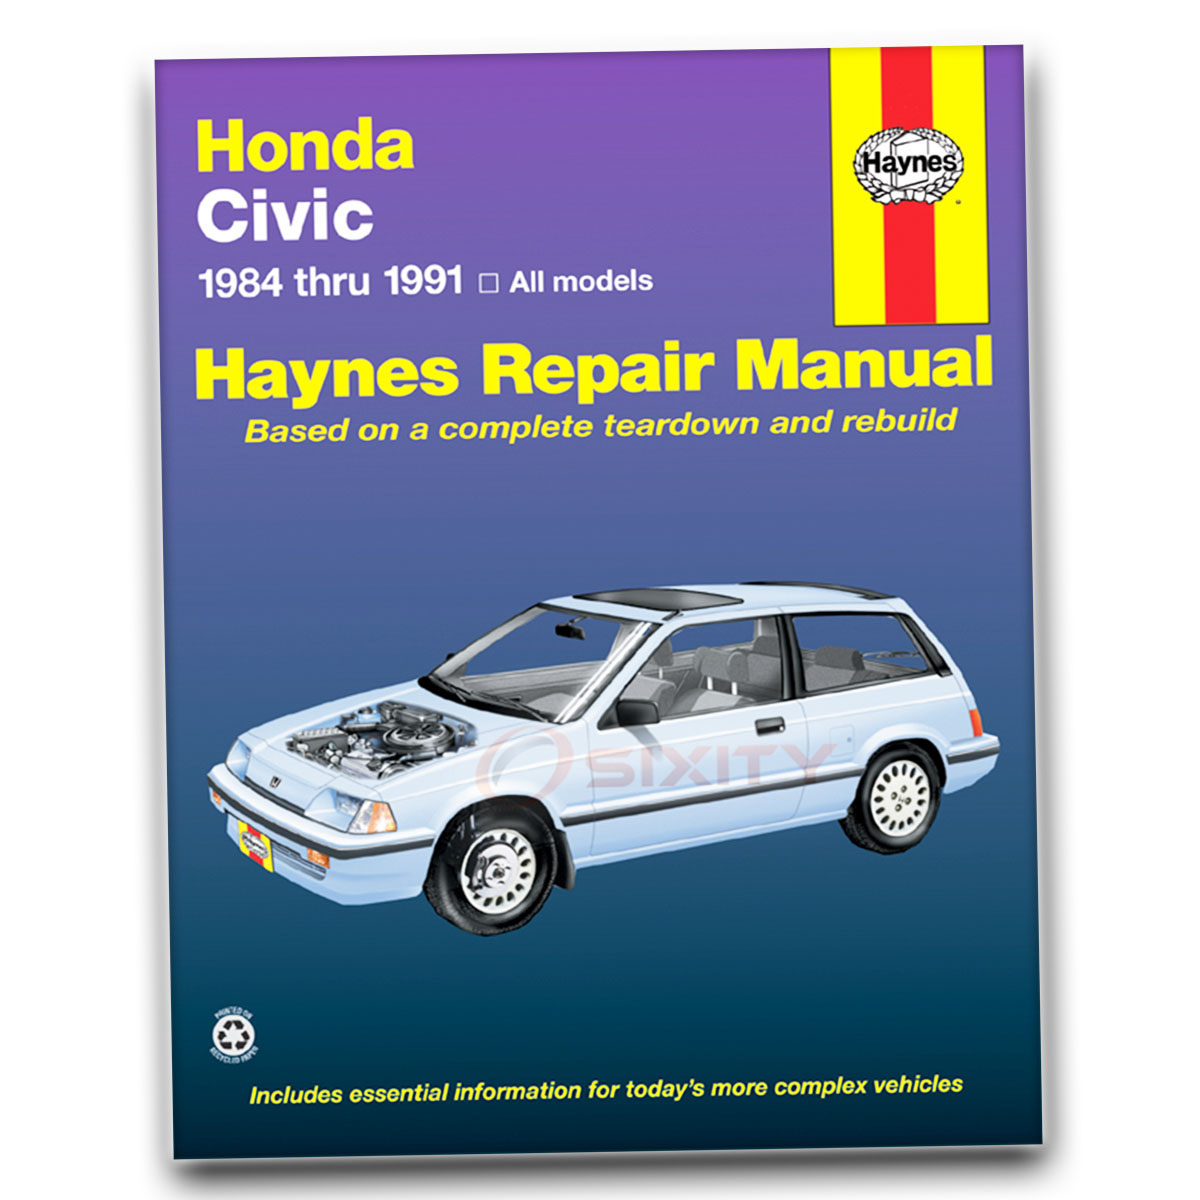 Haynes Repair Manual 42023 for Honda Civic 84-91 Shop Service Garage Book zq